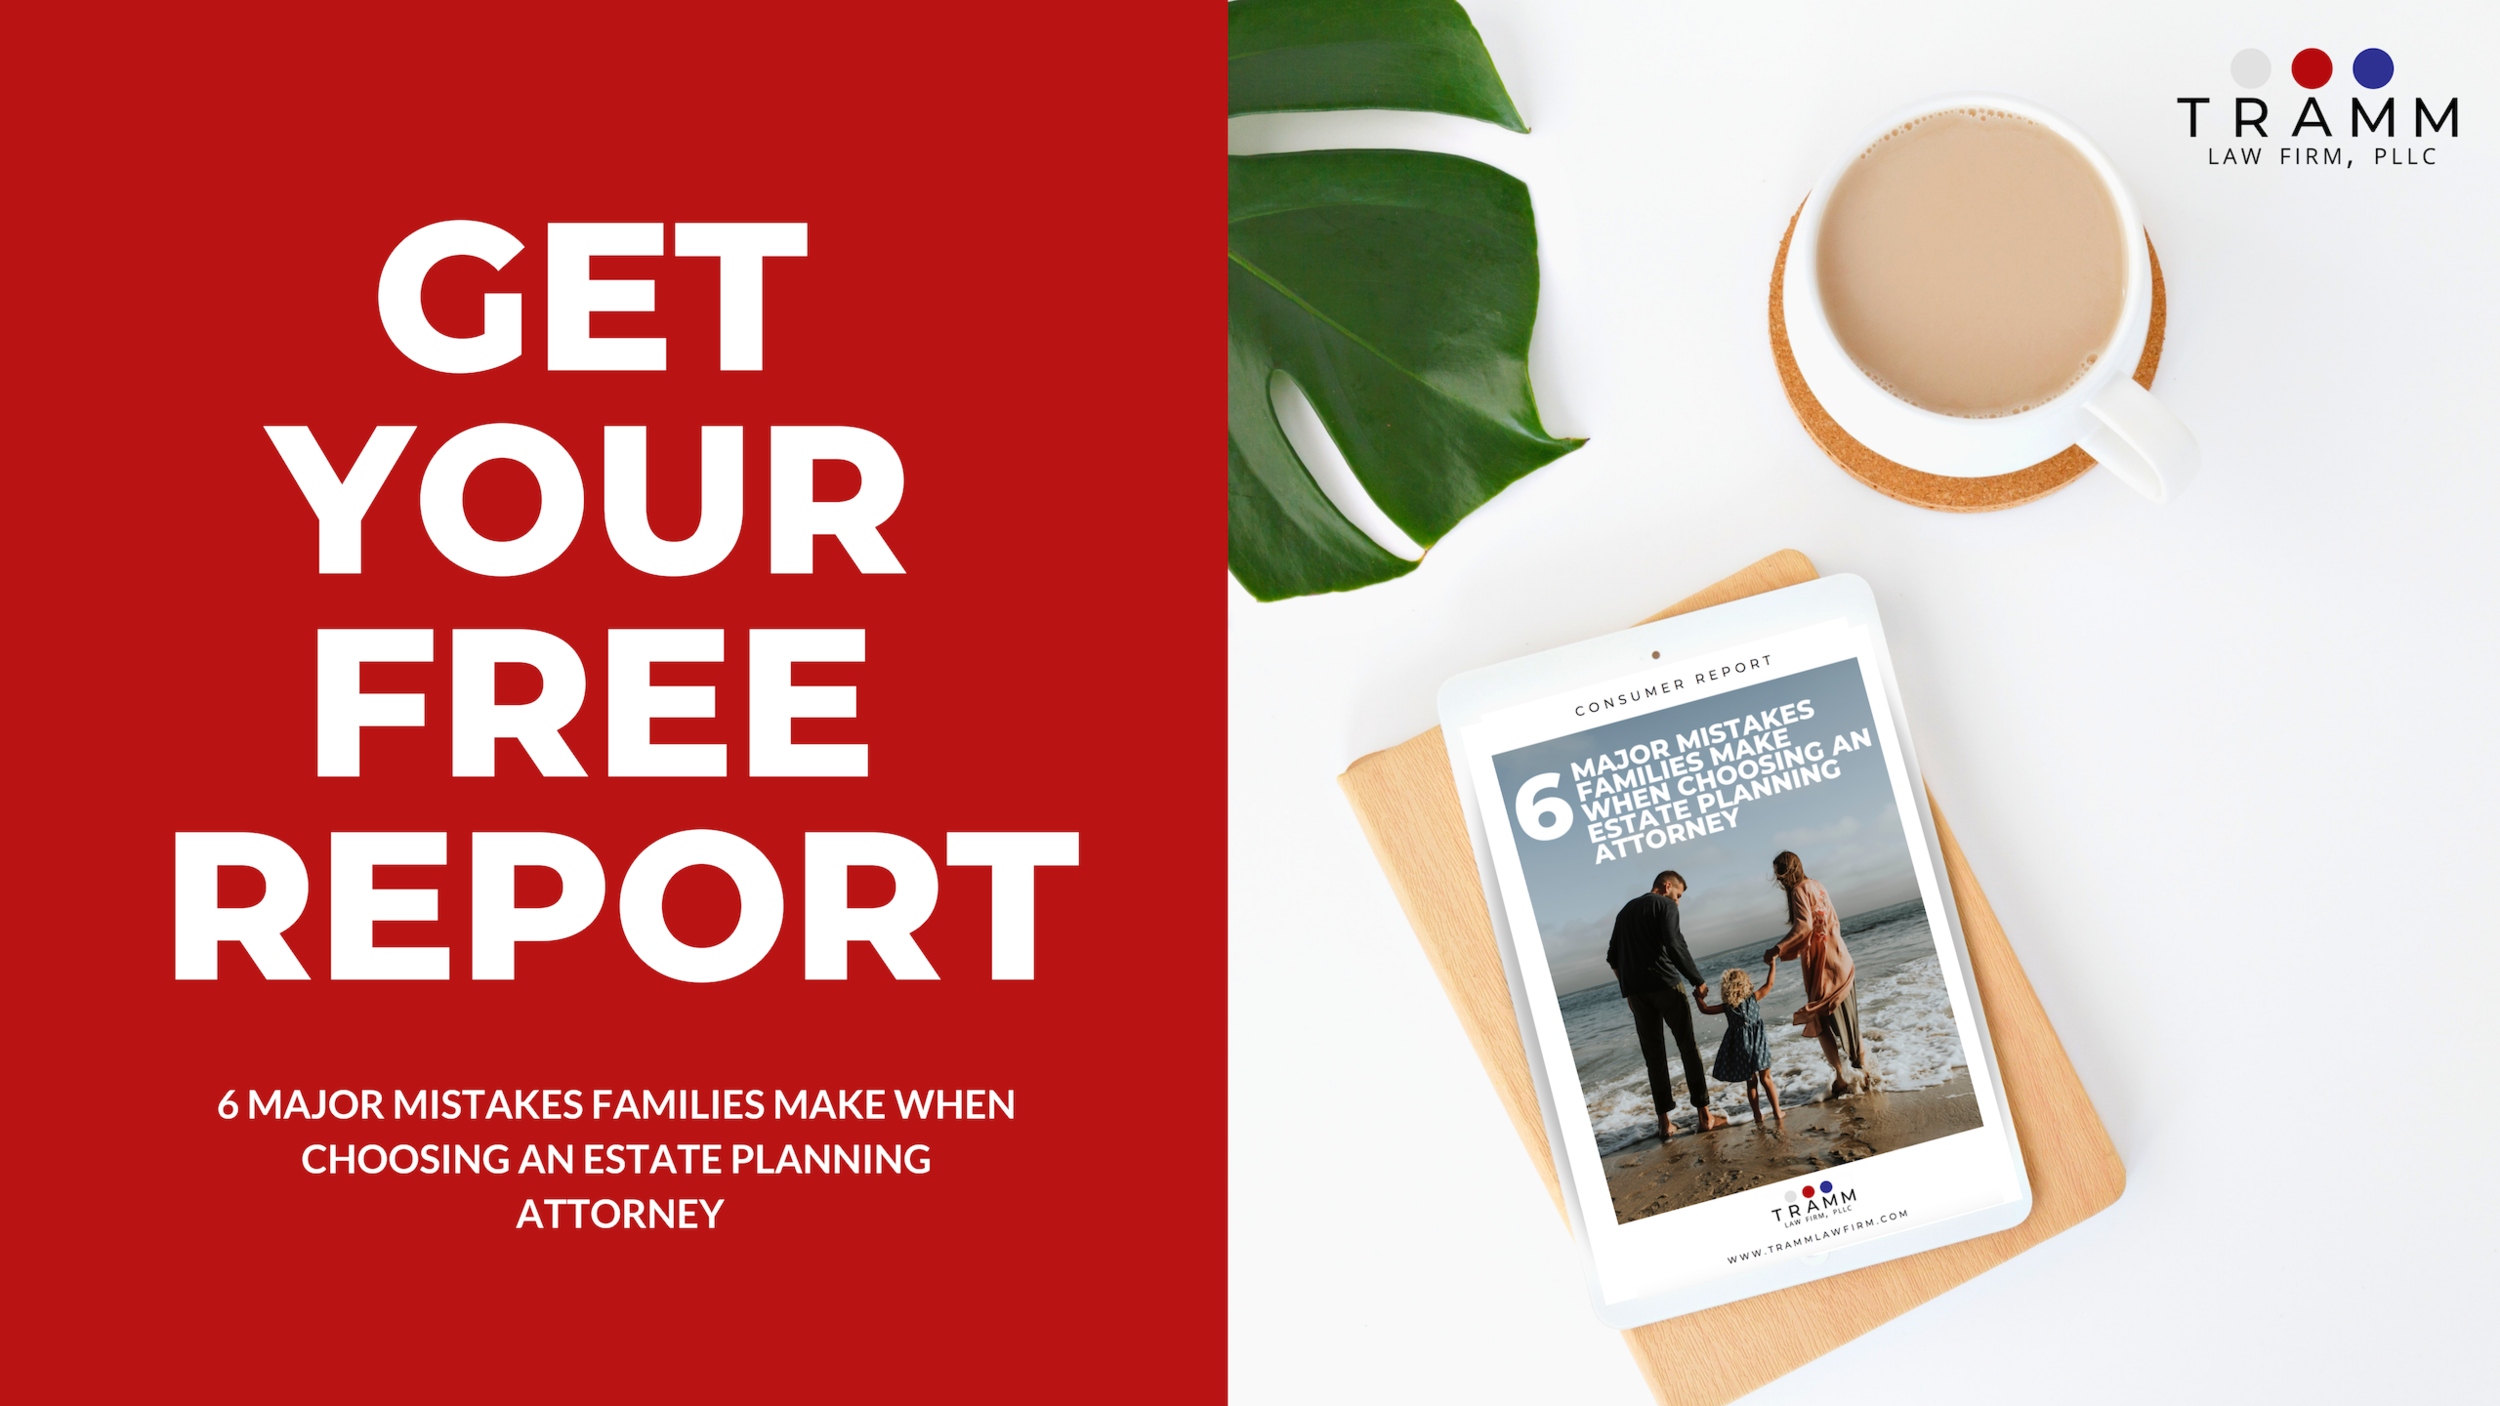 Get Your Free Report from Tramm Law Firm